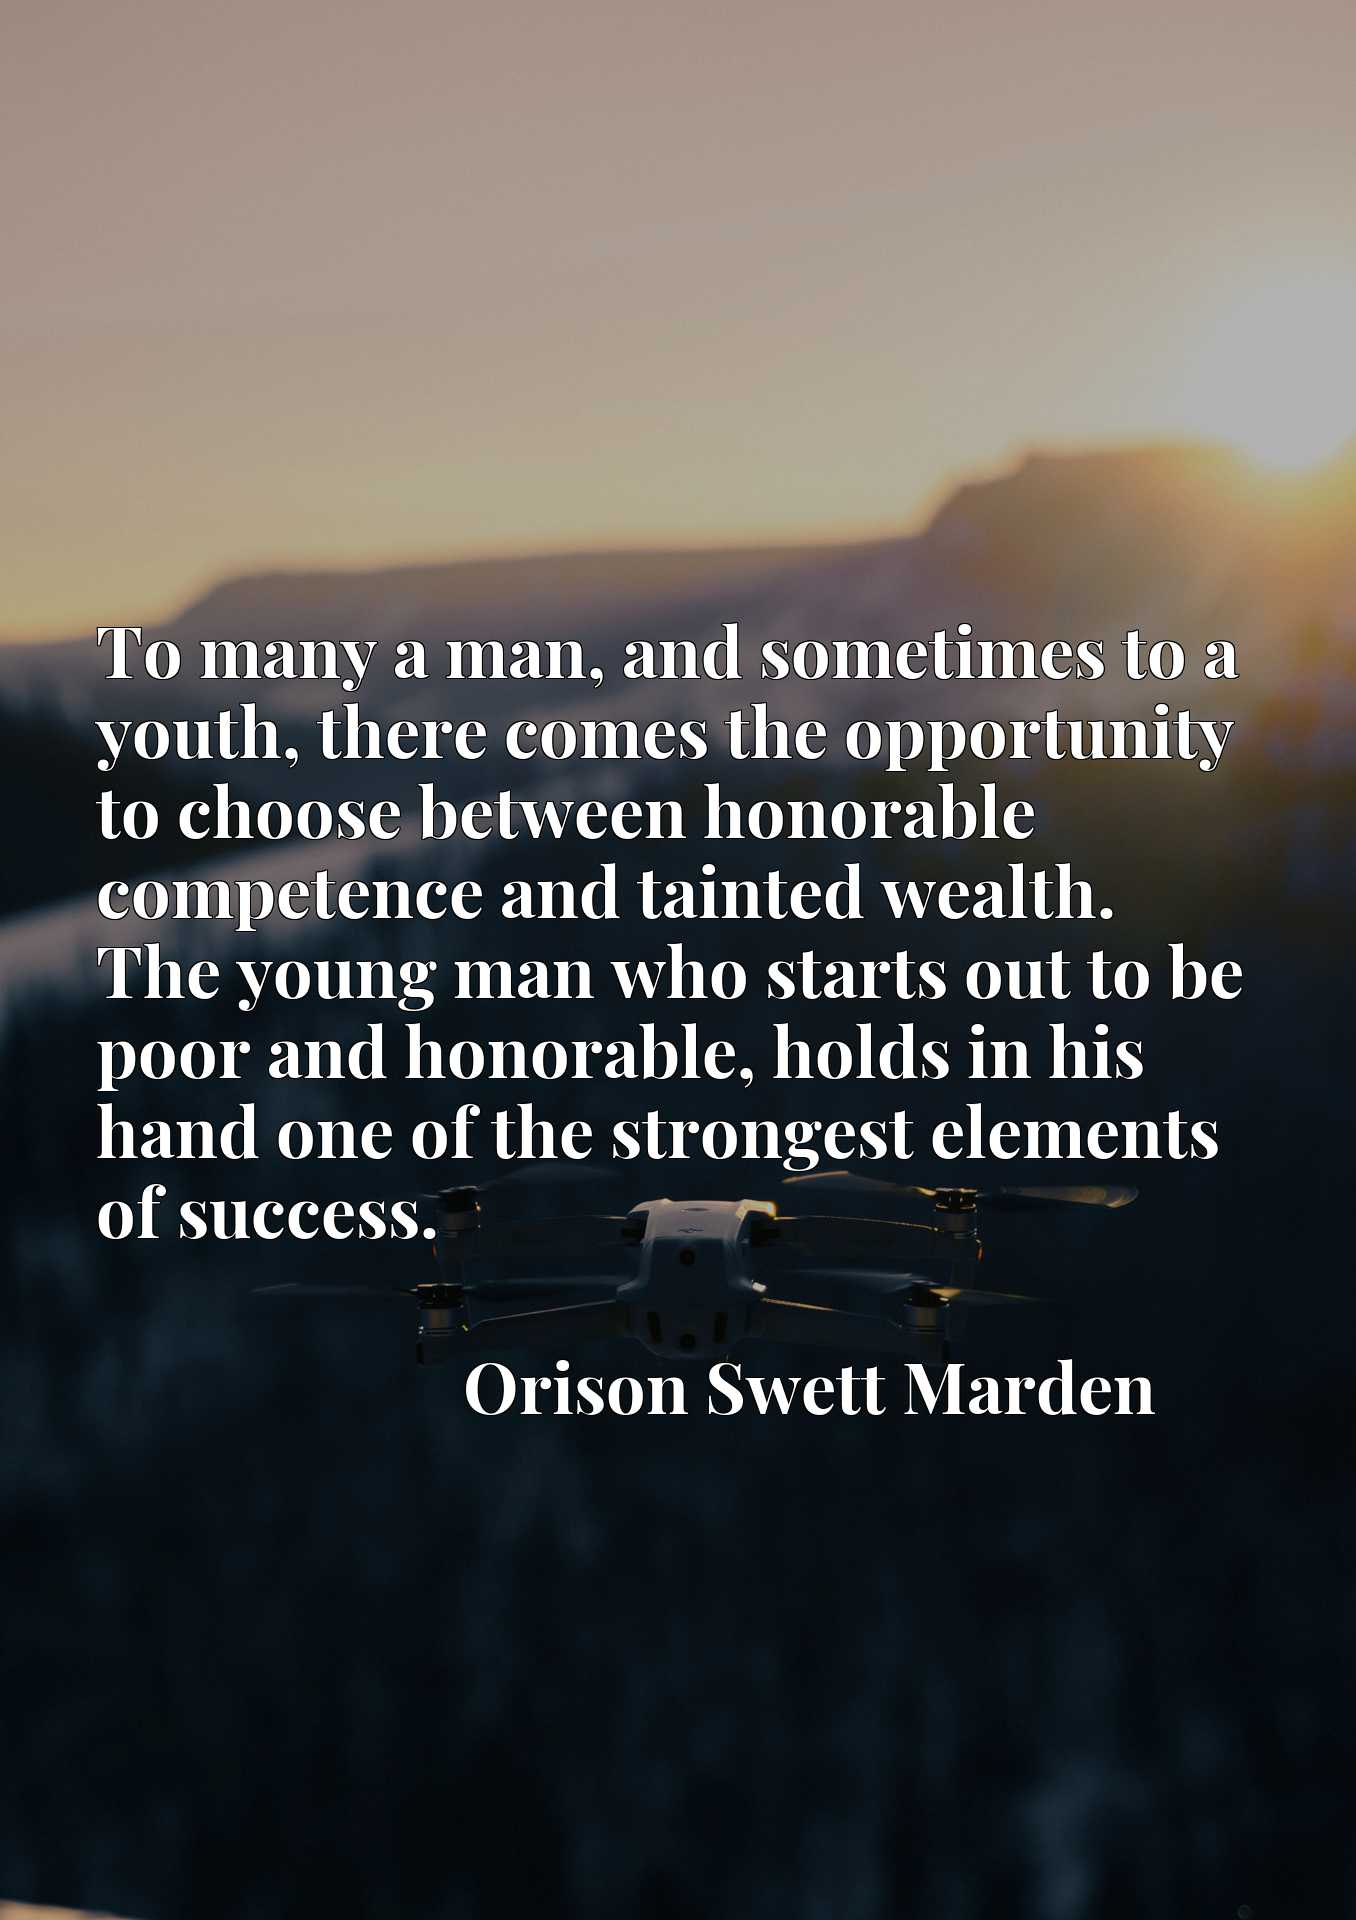 To many a man, and sometimes to a youth, there comes the opportunity to choose between honorable competence and tainted wealth. The young man who starts out to be poor and honorable, holds in his hand one of the strongest elements of success.